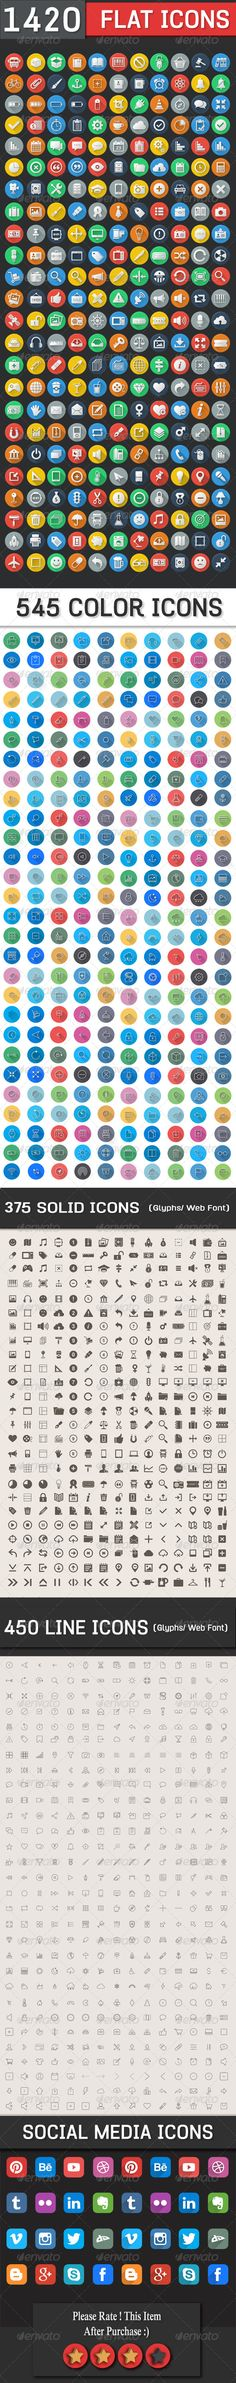 1420 Flat Icons - Colorful Icons Set Check out this #graphicriver item '1420 Flat Icons - Colorful Icons Set' http://graphicriver.net/item/1420-flat-icons-colorful-icons-set/7214124?ref=ikonogirl #new #colorful #flat #icons #icon #big #set Flat Ui, Flat Icons, Iphone Icon, Home Logo, Line Icon, Icon Font, Icon Pack, App Development, Vector Icons